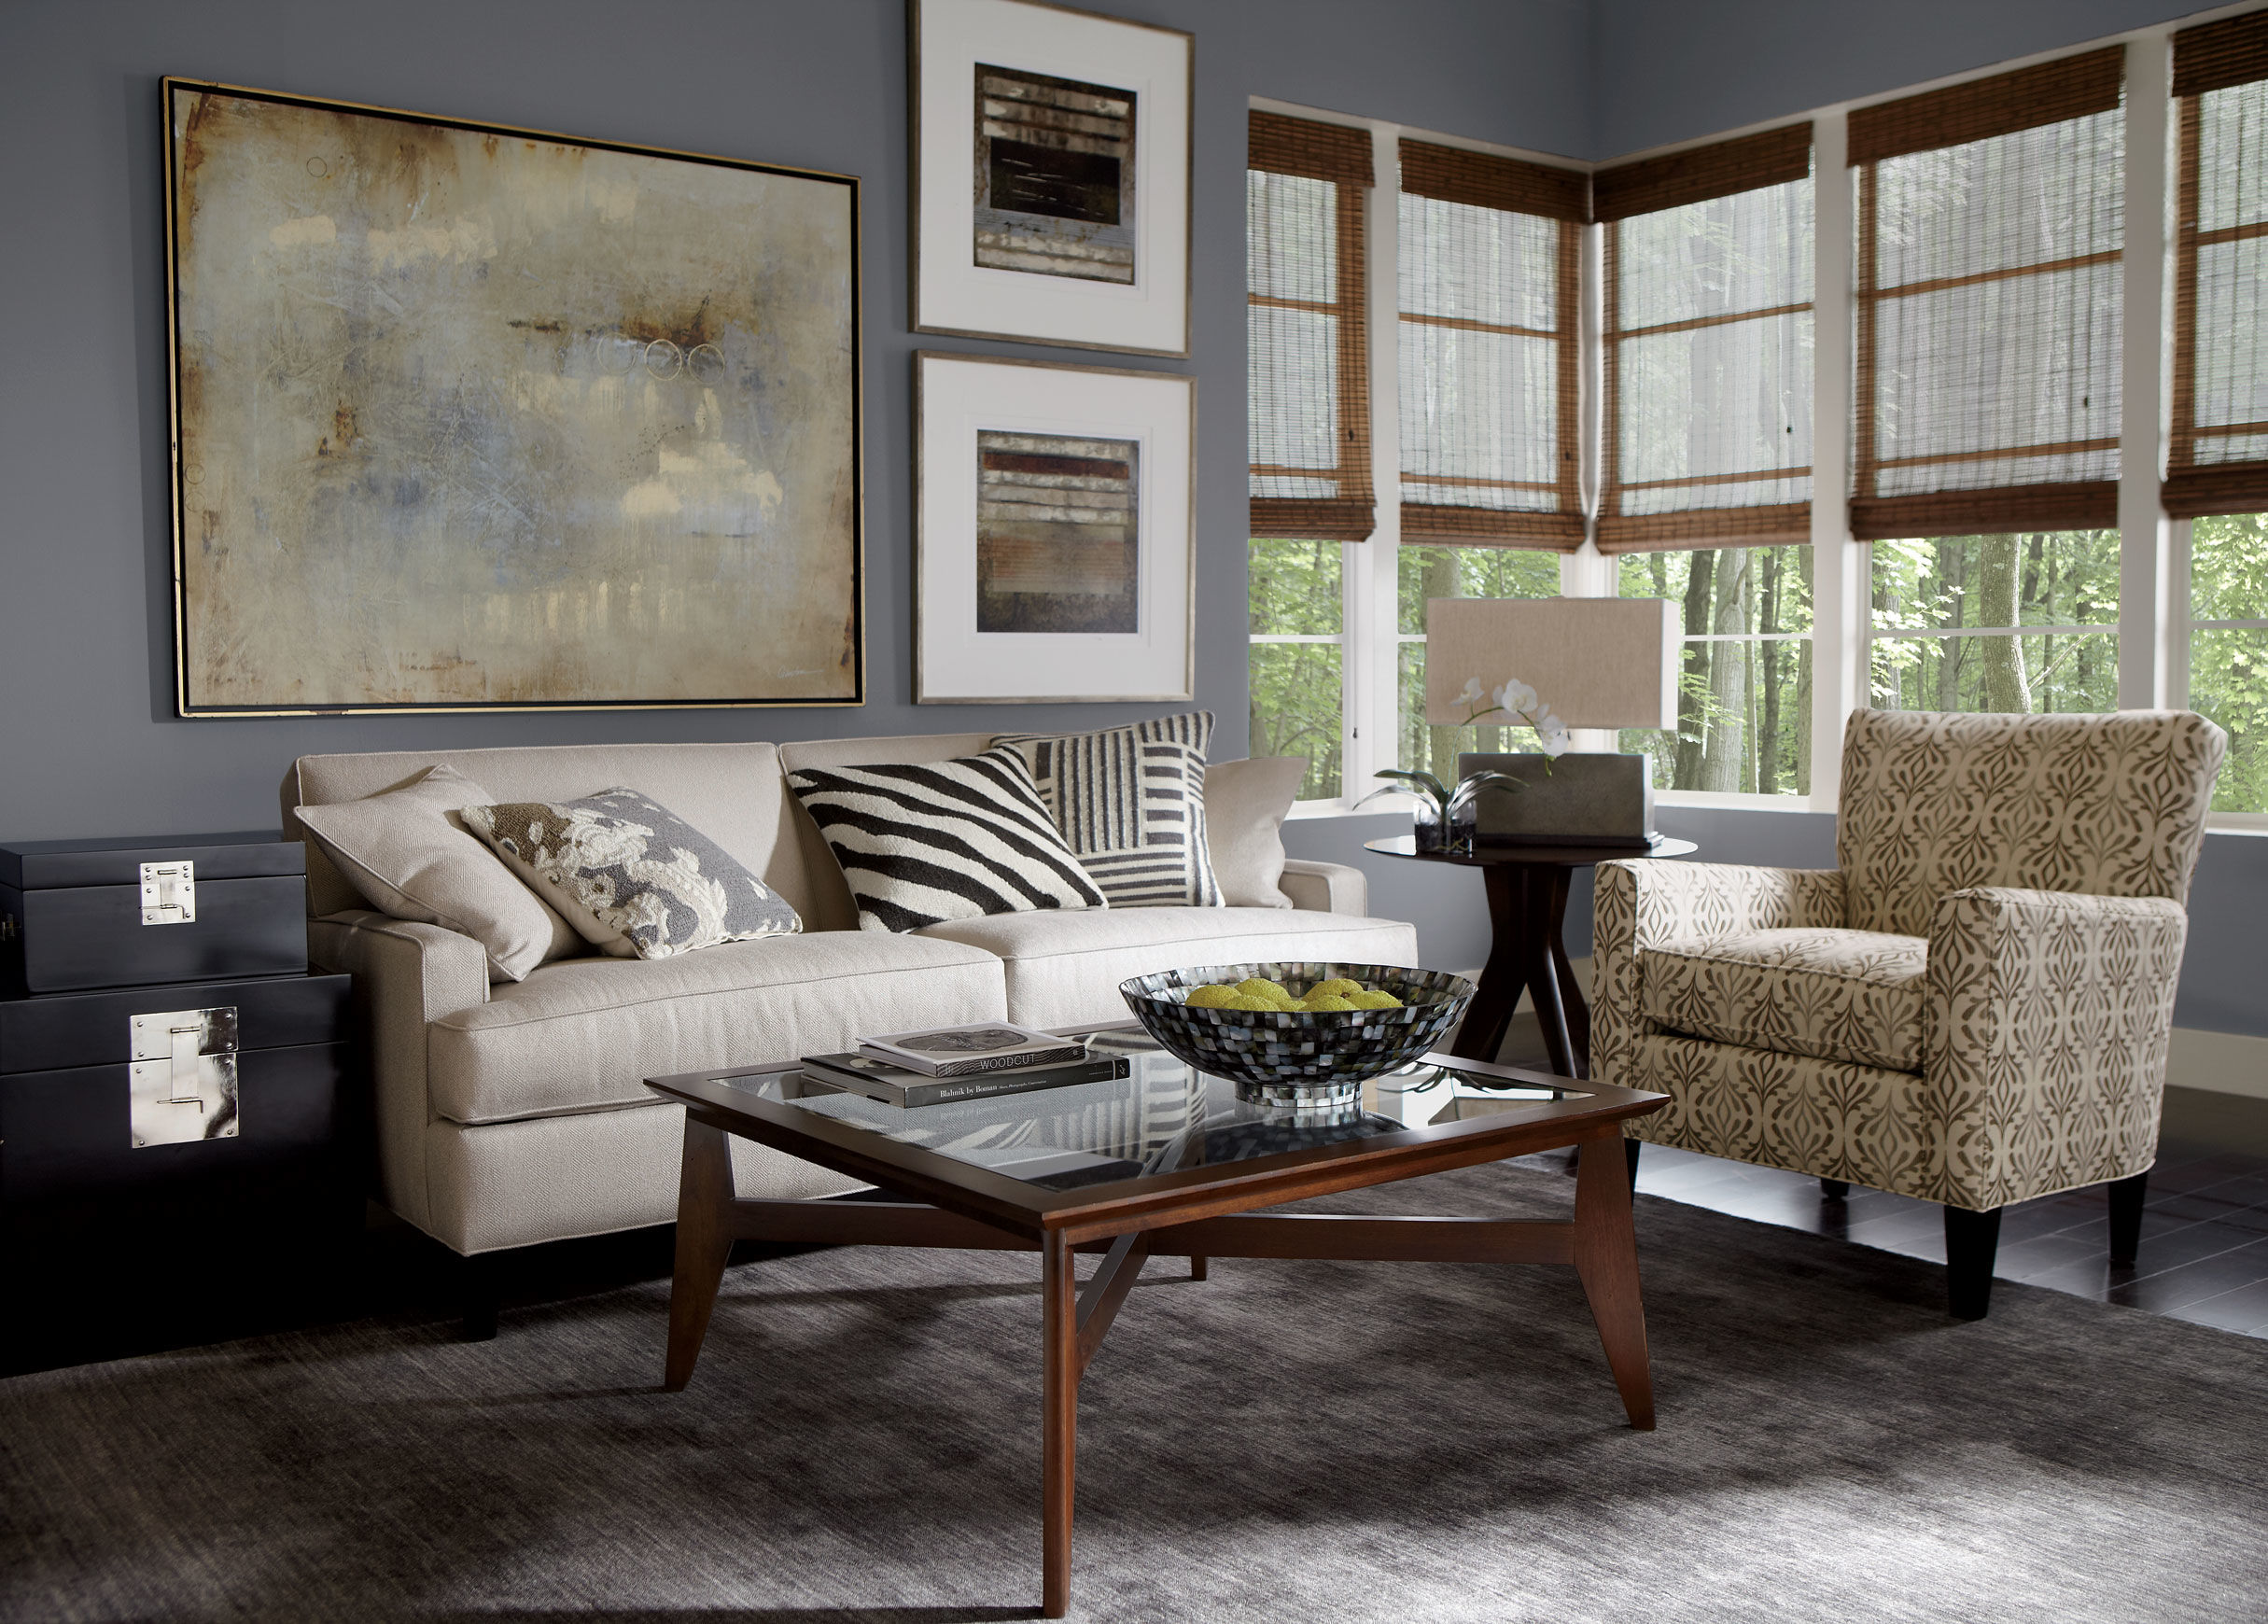 Ethan Allen leather Furniture for Charming and fortable Home